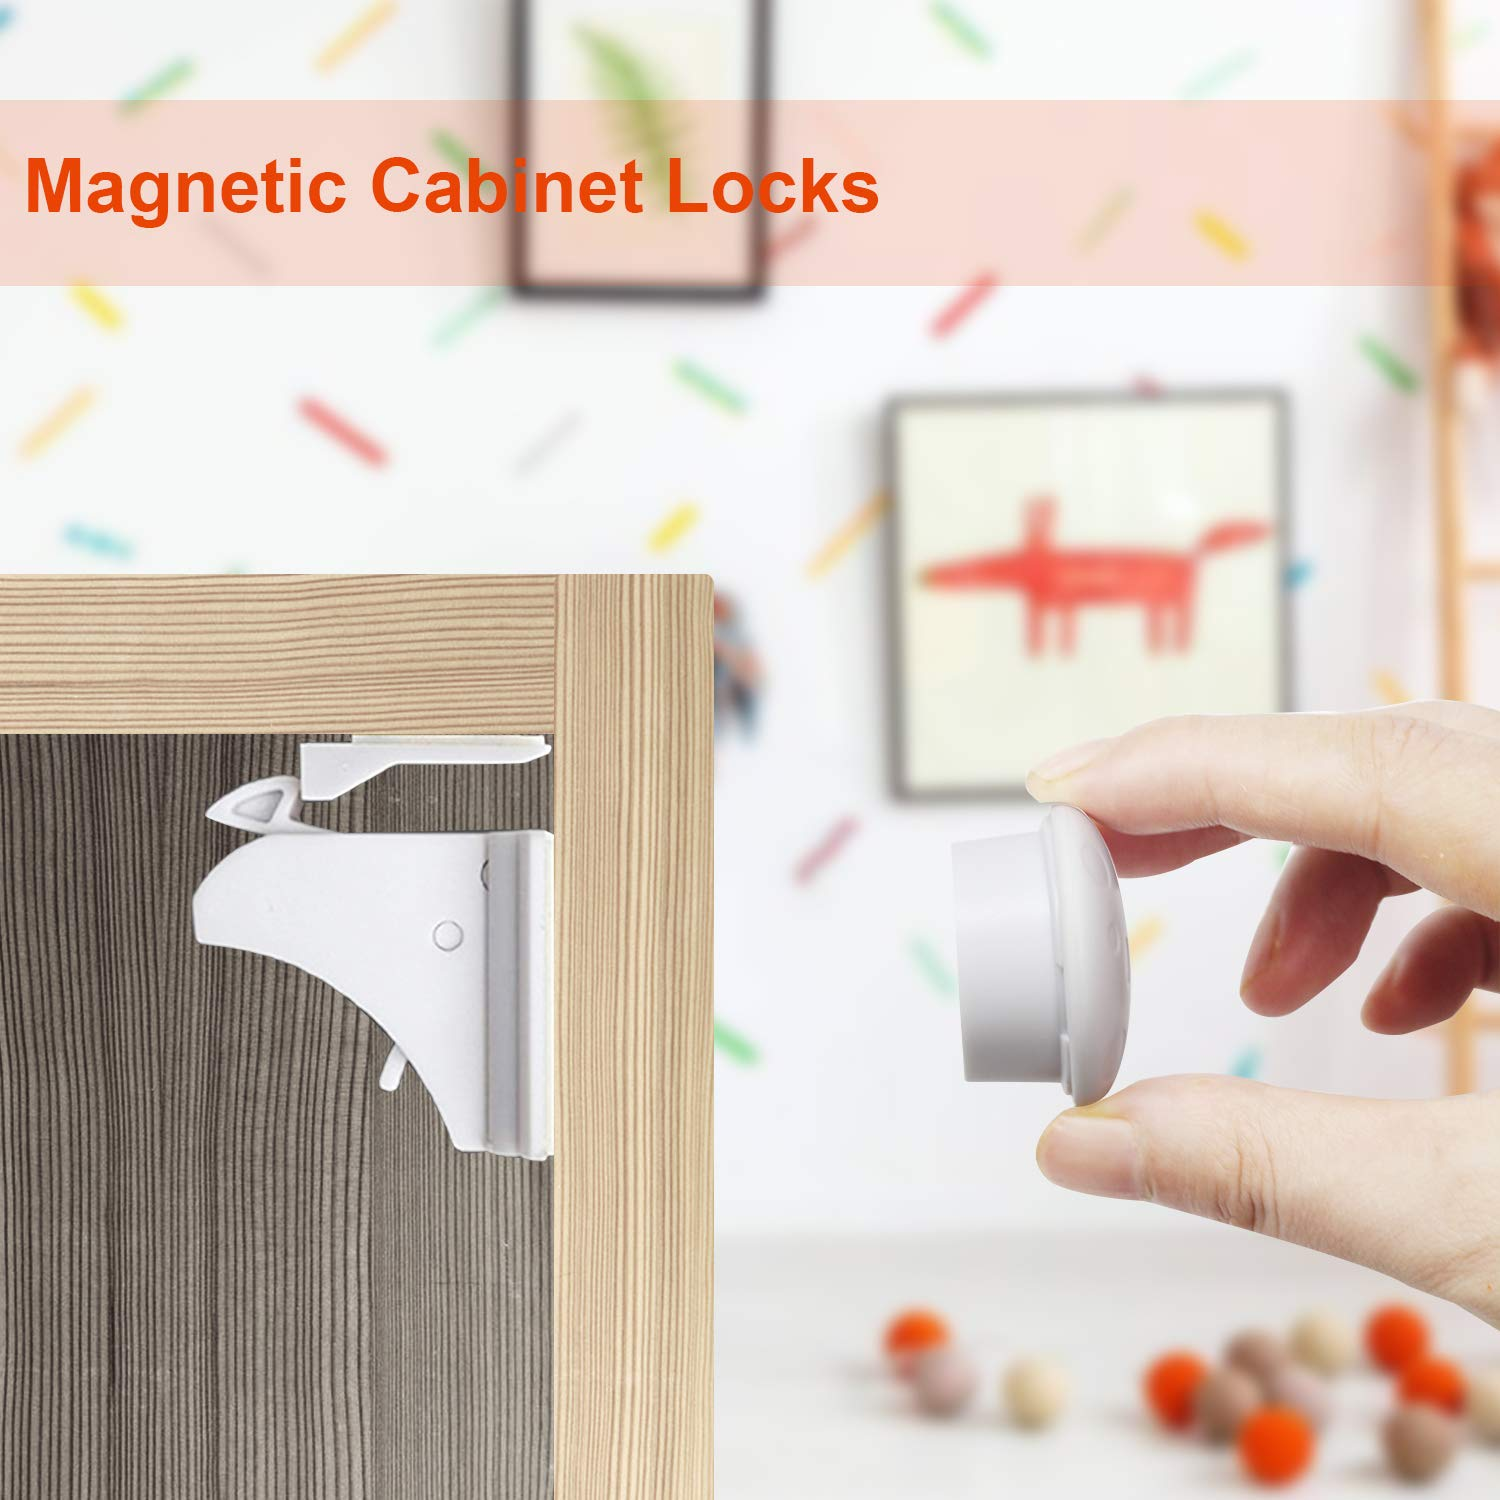 Baby Proofing, 44 PCS Magnetic Cabinet Locks Child Safety, 8 Cabinet Locks + 2 keys, 10 Corner Guards, 20 Outlet Plug Covers, with Strong 3M Adhesive Tape and Metal Screws by ARNIL (Image #7)